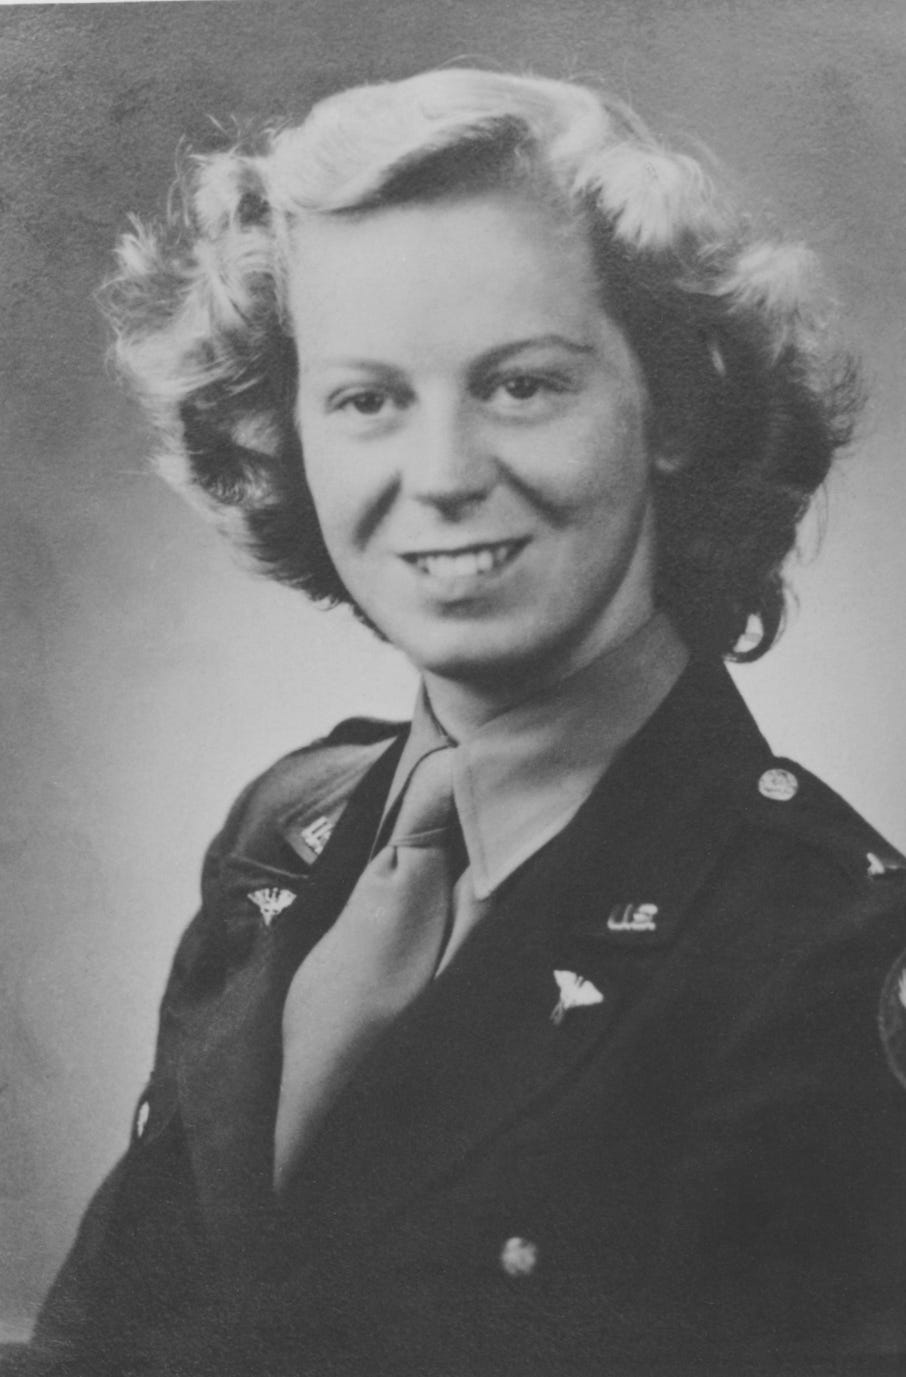 Memorial Day reminder: In pandemic, as in war, nurses serve bravely at the front